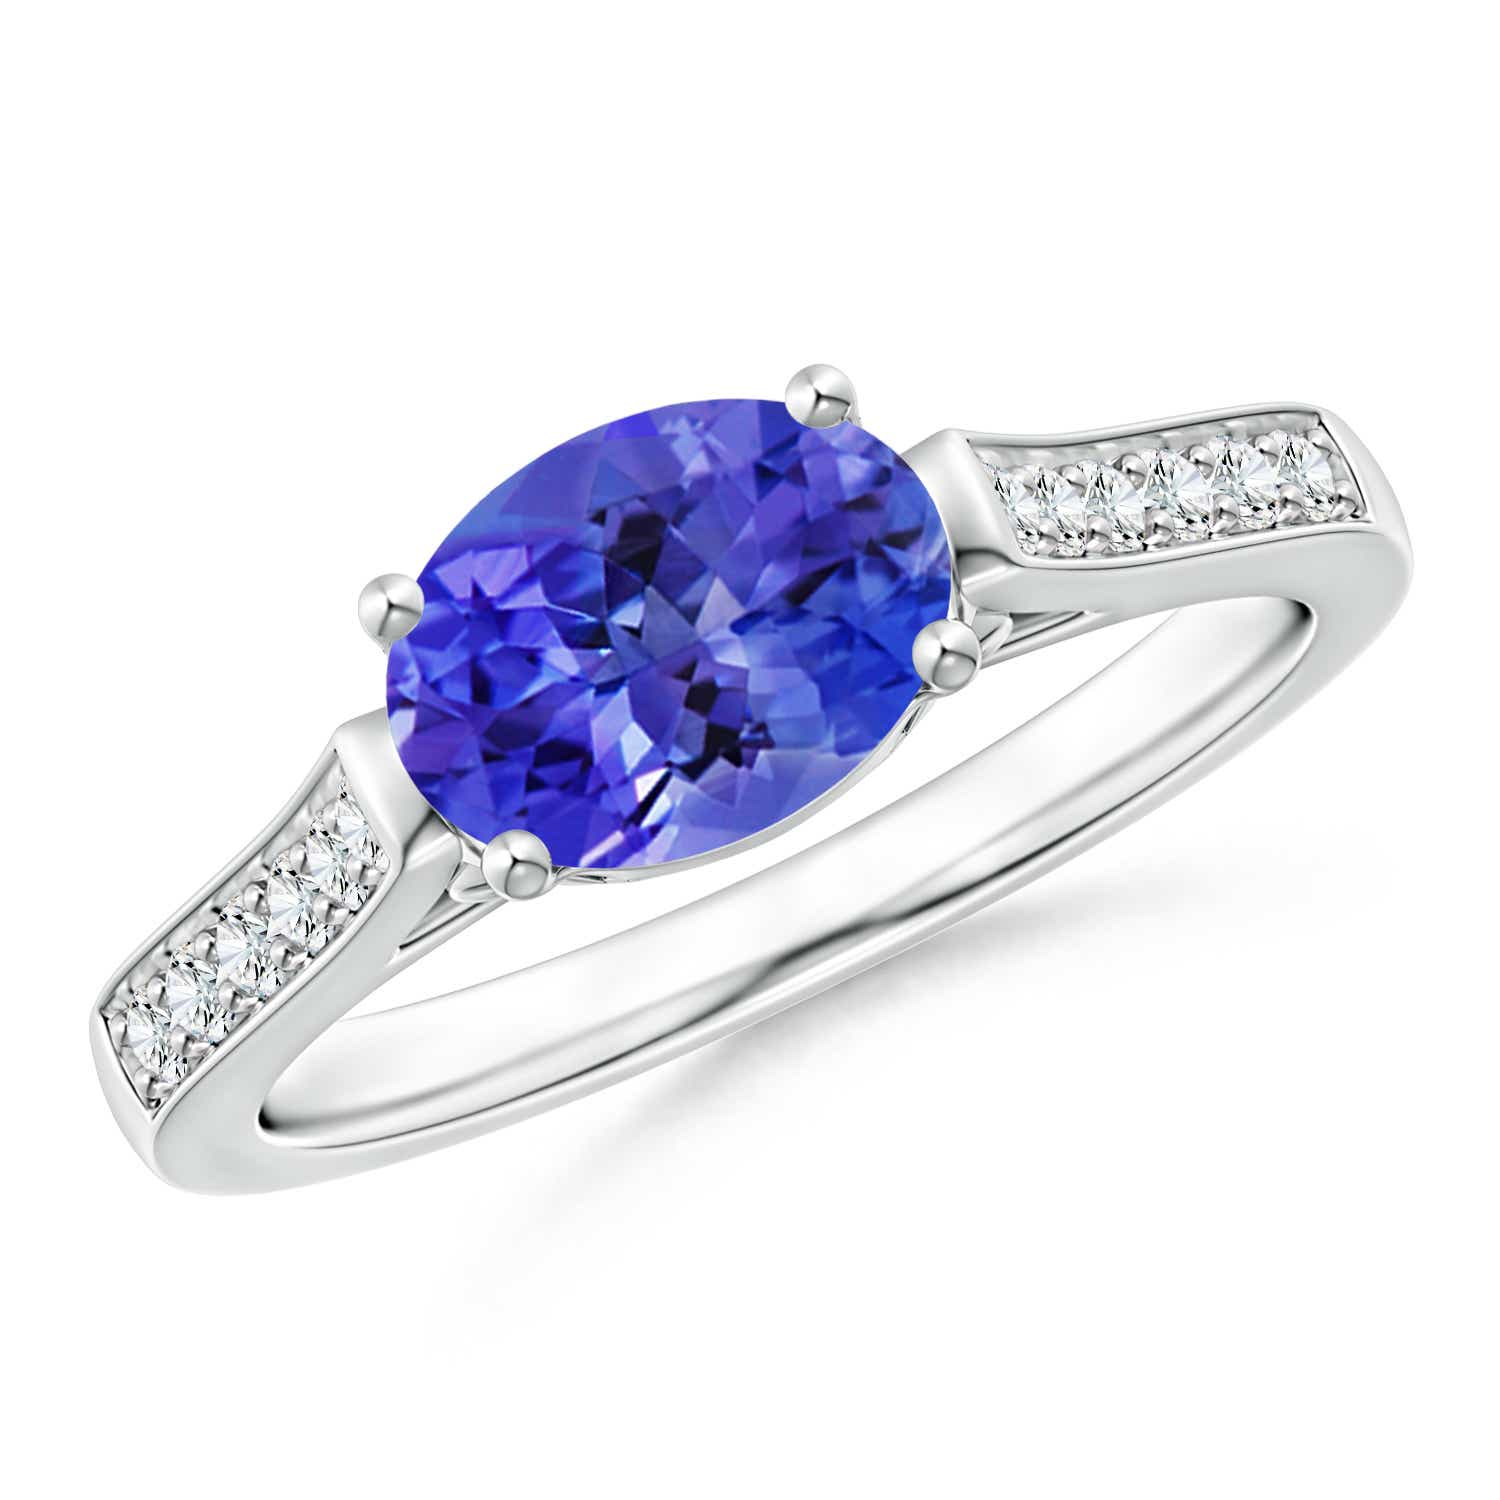 index silver fine size sterling ring diamond trillion auctions set jewelry in gallery tanzanite cut image